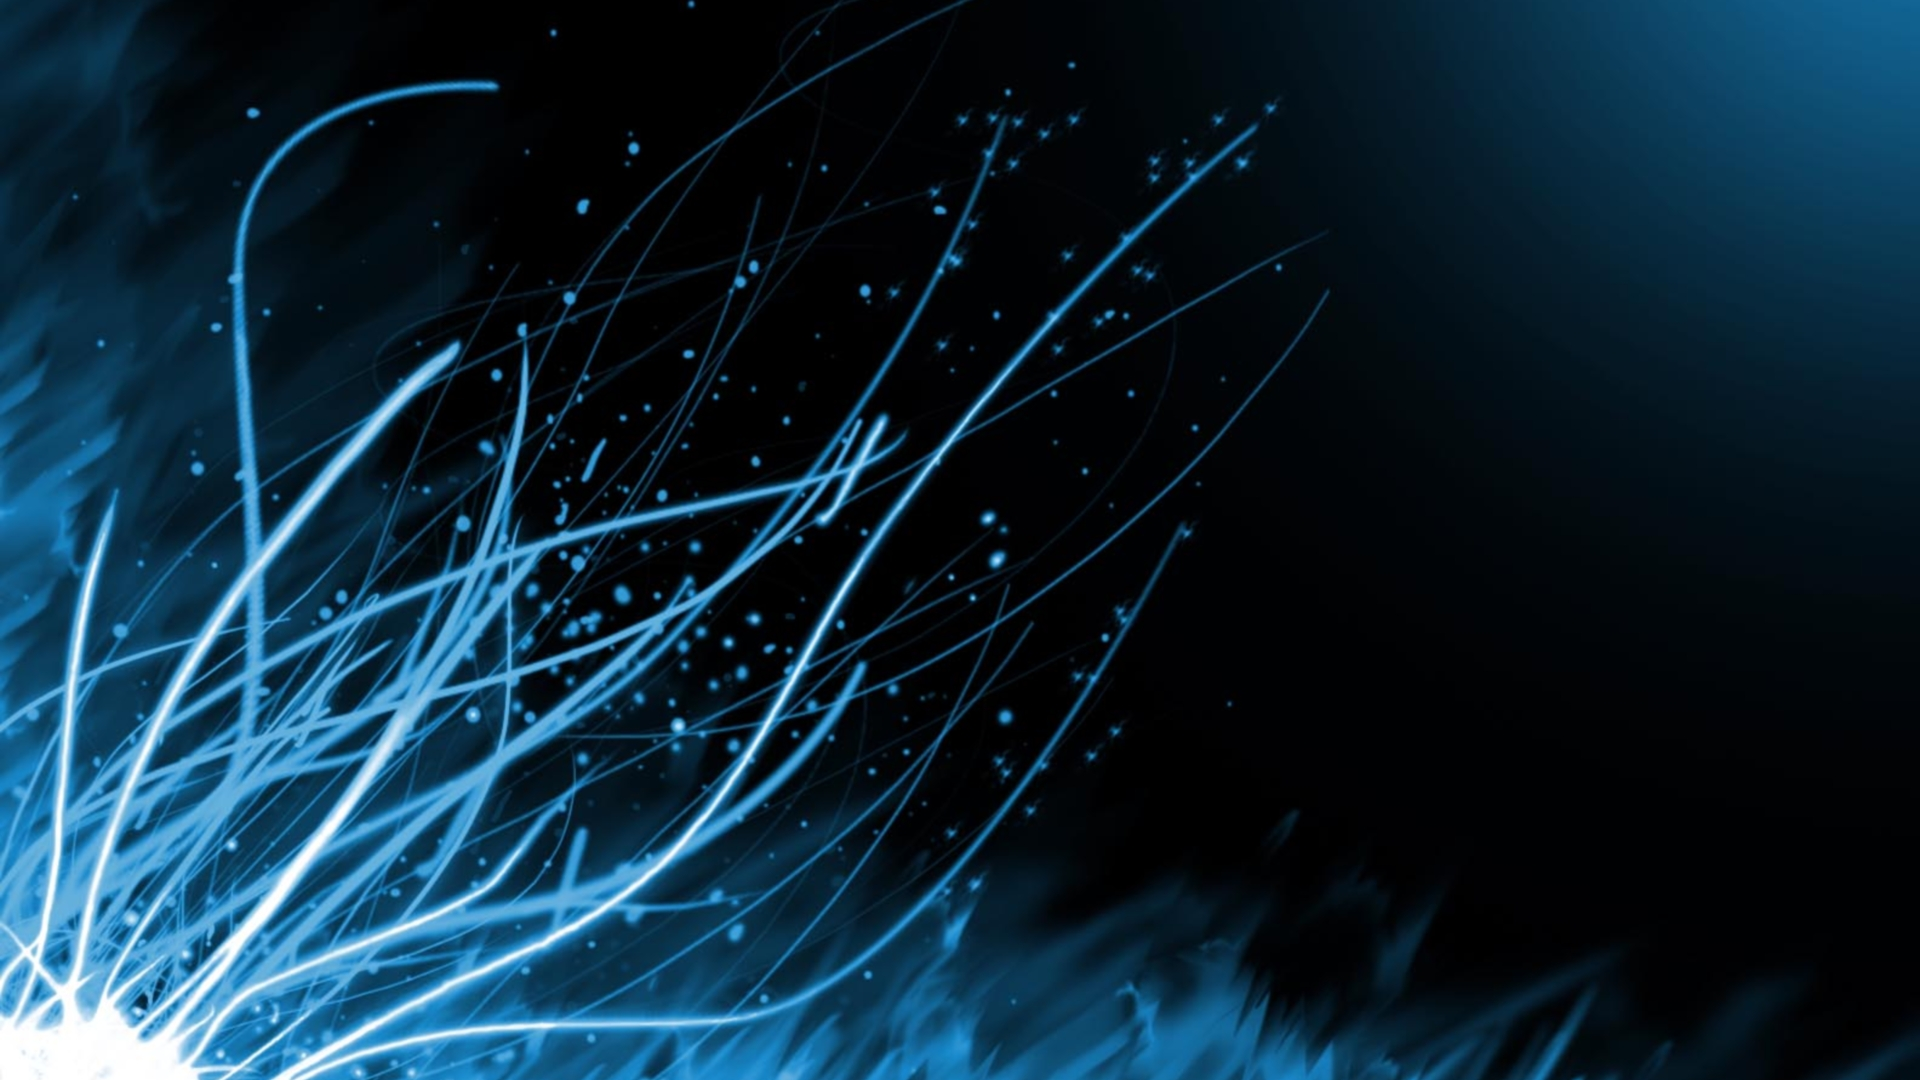 Black And Blue Abstract Backgrounds Abstract 1920x1080